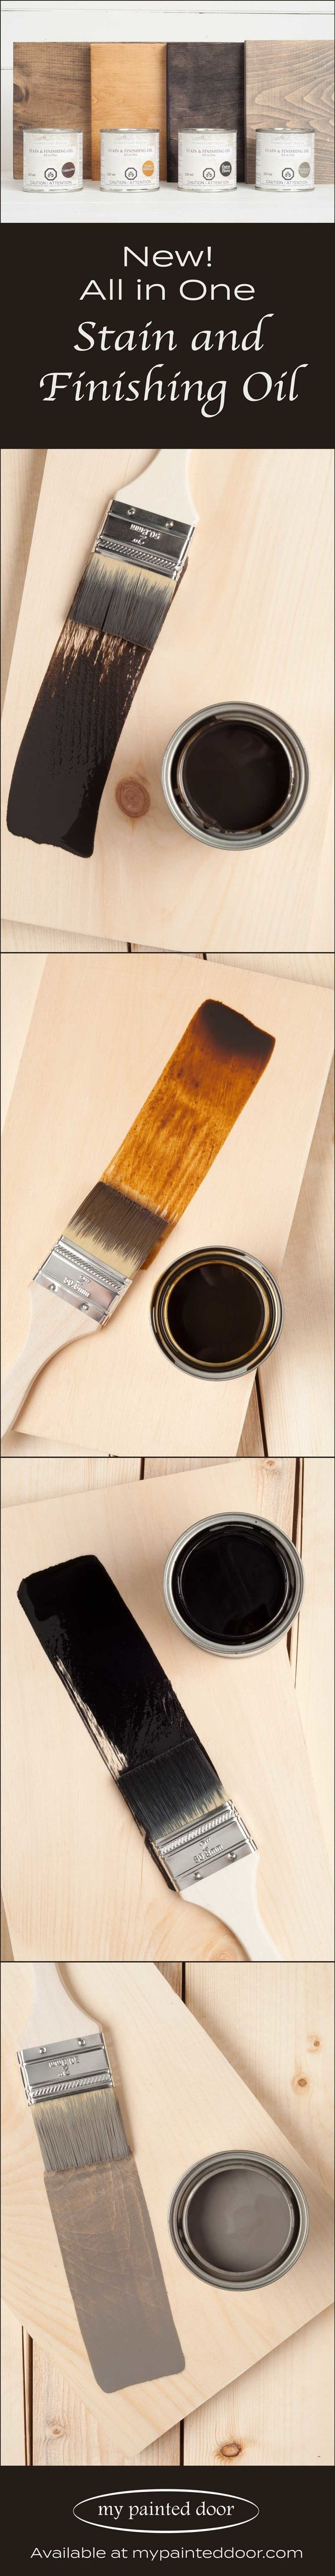 Homestead House All in One Stain and Finishing Oil is available in four colours: Cappuccino, Ebony, Driftwood and Golden Pine.